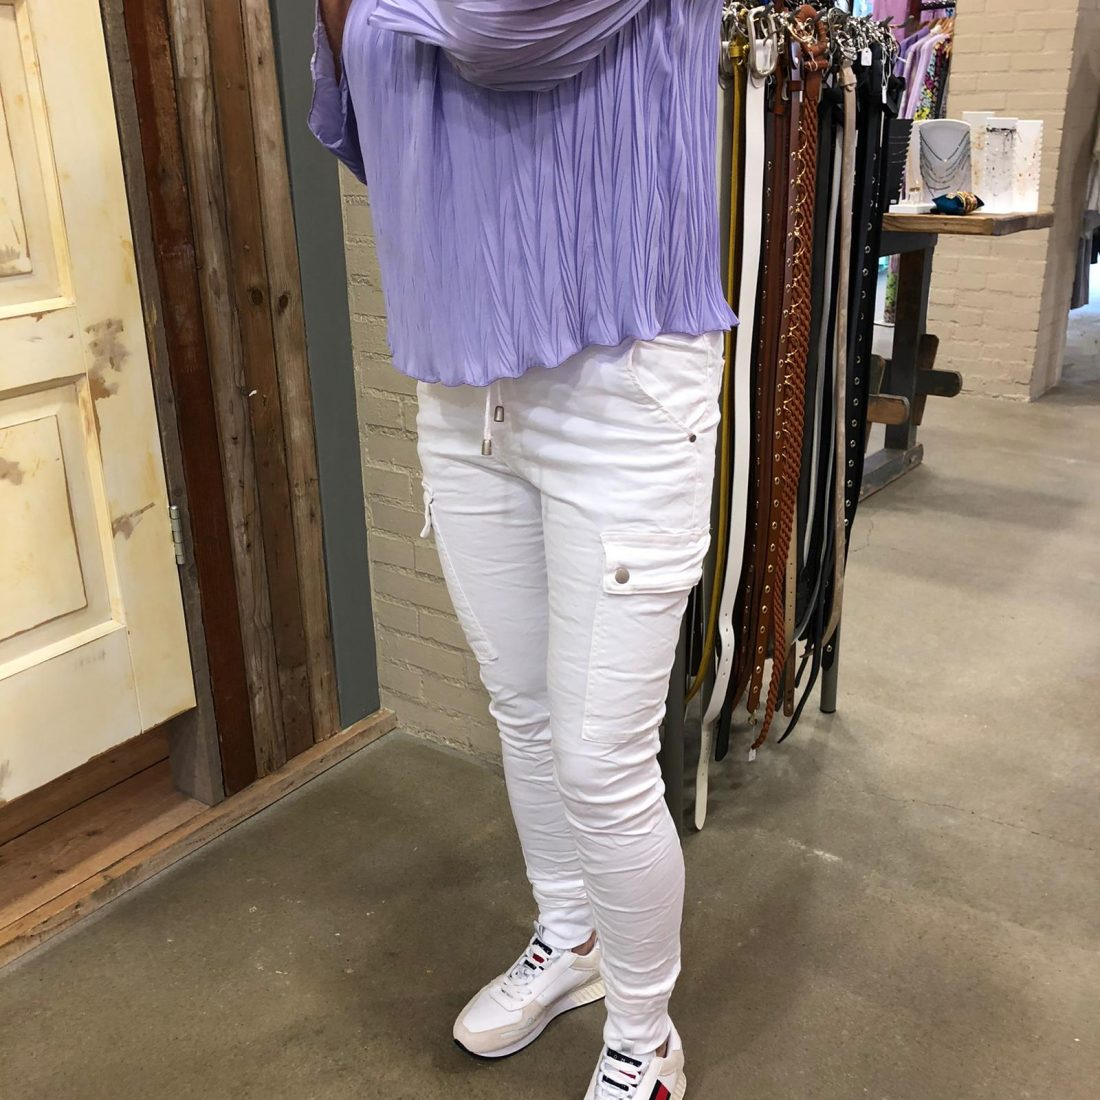 Ambika Blouse Florianne Paars & Melly & Co Broek Wit Store3 Mode & Accessoires